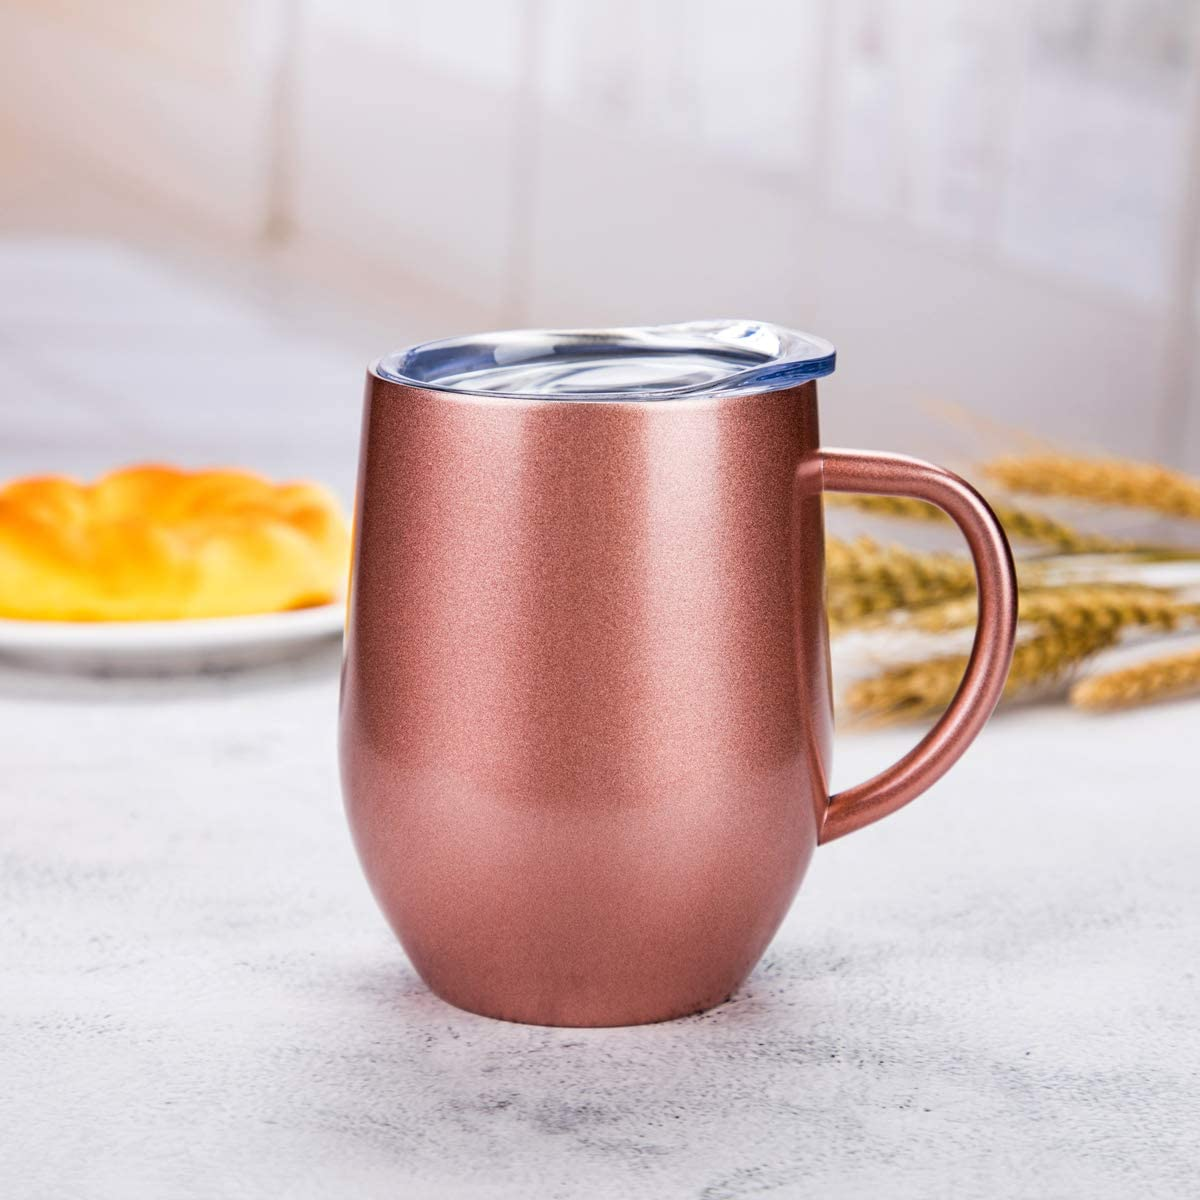 FLY SPRAY Egg Shape Stainless Steel Cup Thermos Coffee Mug Insulated Double Wall with Lid Handle For Water Tea Ice Drink /& Hot Beverage Home Office Car Travel School Use Unique Creative,12oz Rose Gold